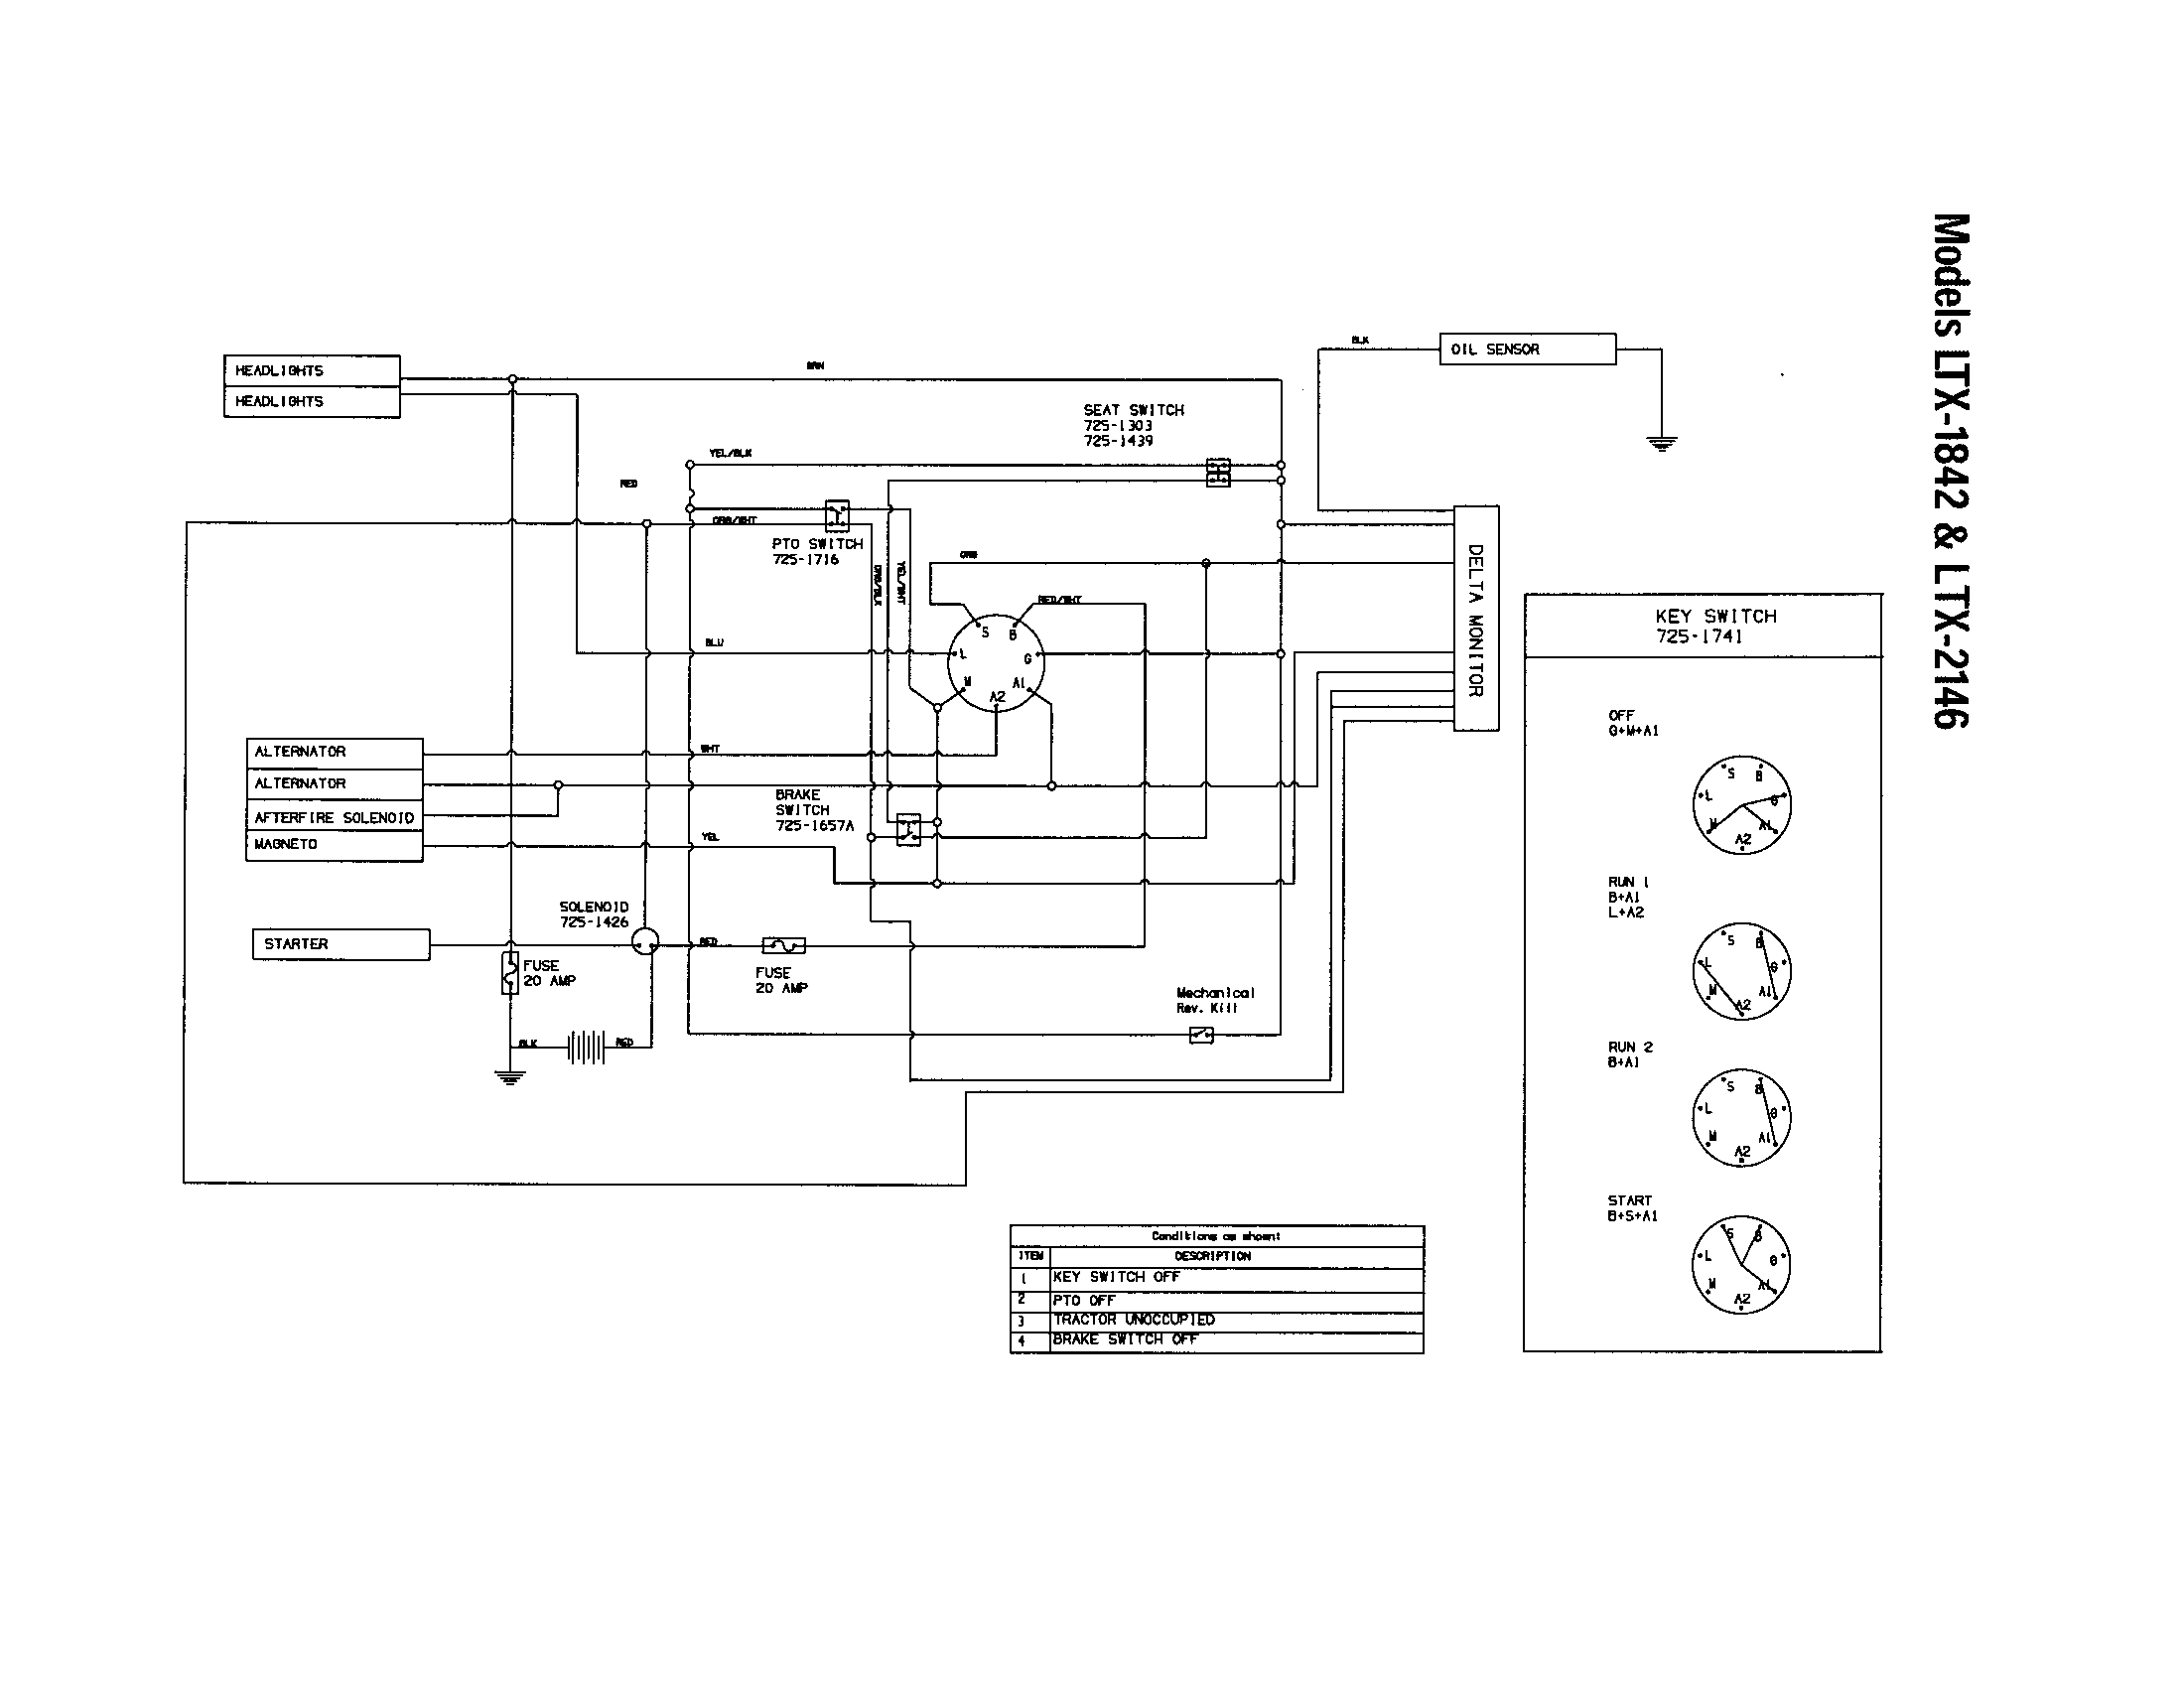 5f6fdf170ac50150de0653e8e97fb173 wiring diagram diagram & parts list for model 13ap609g063 troybilt modem wiring diagram at mifinder.co